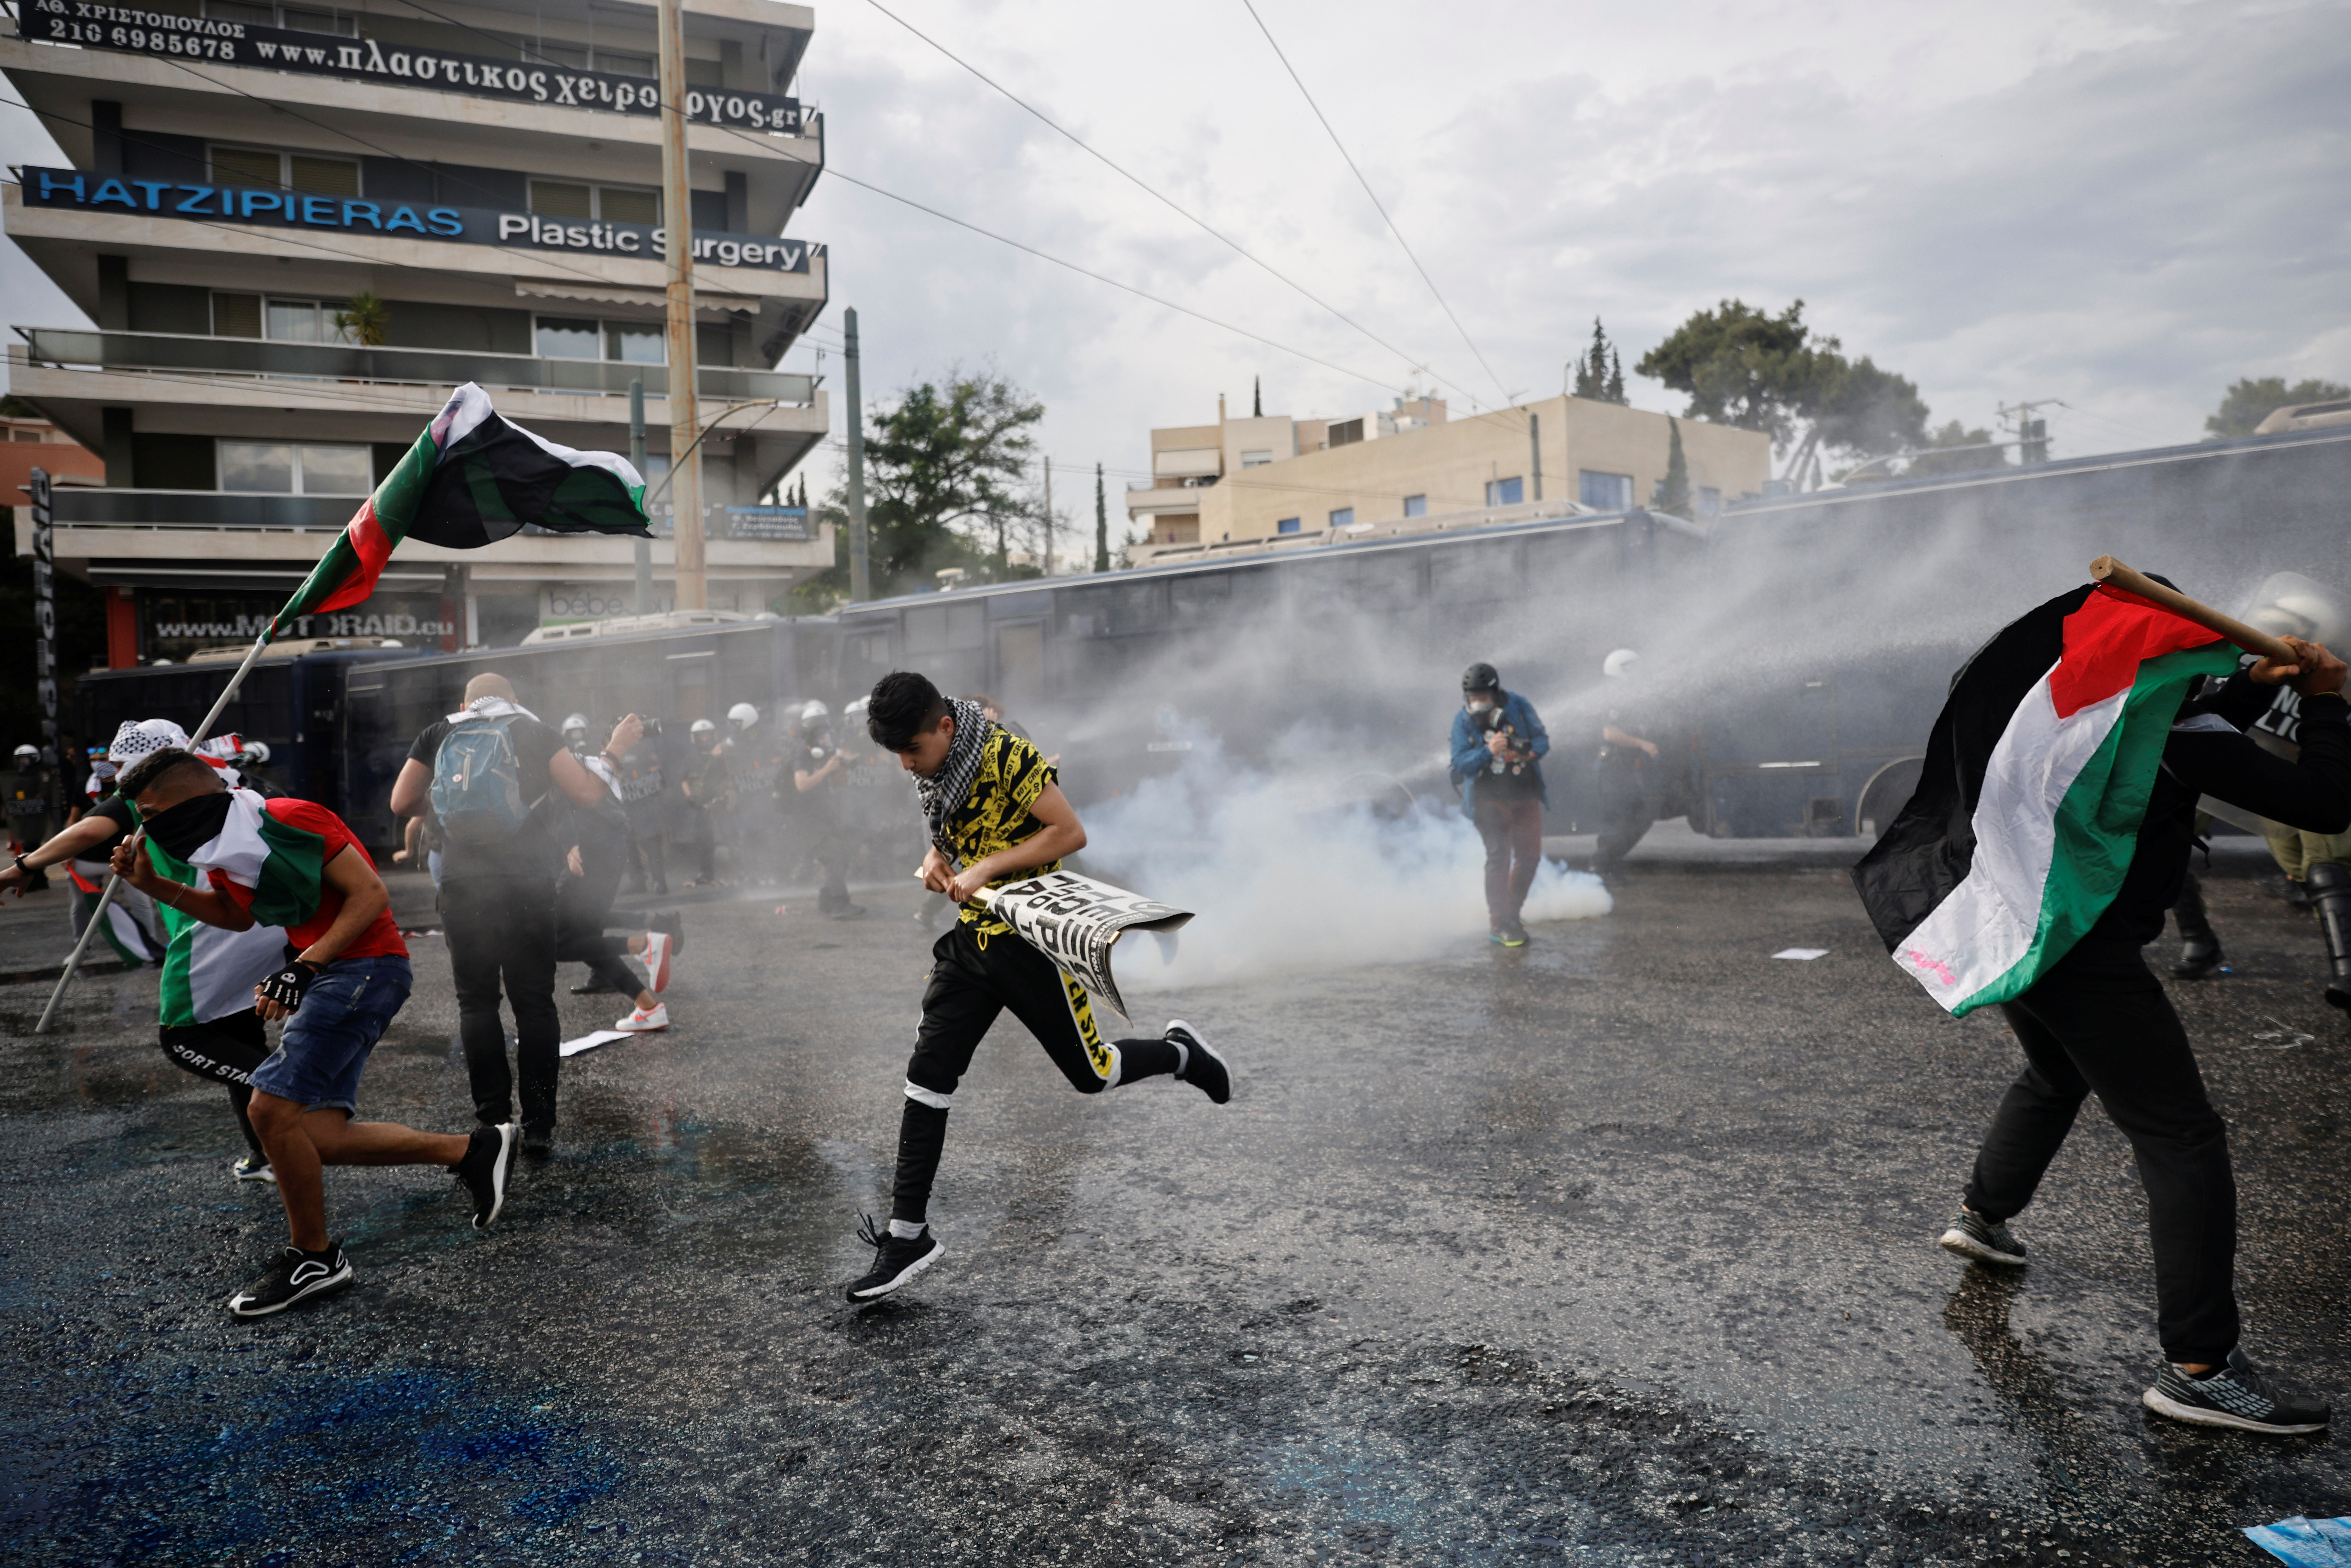 Police officers use a water cannon against pro-Palestinian protesters as they clash during a demonstration outside the Israeli embassy, following a flare-up of Israeli-Palestinian violence, in Athens, Greece, May 15, 2021. REUTERS/Alkis Konstantinidis